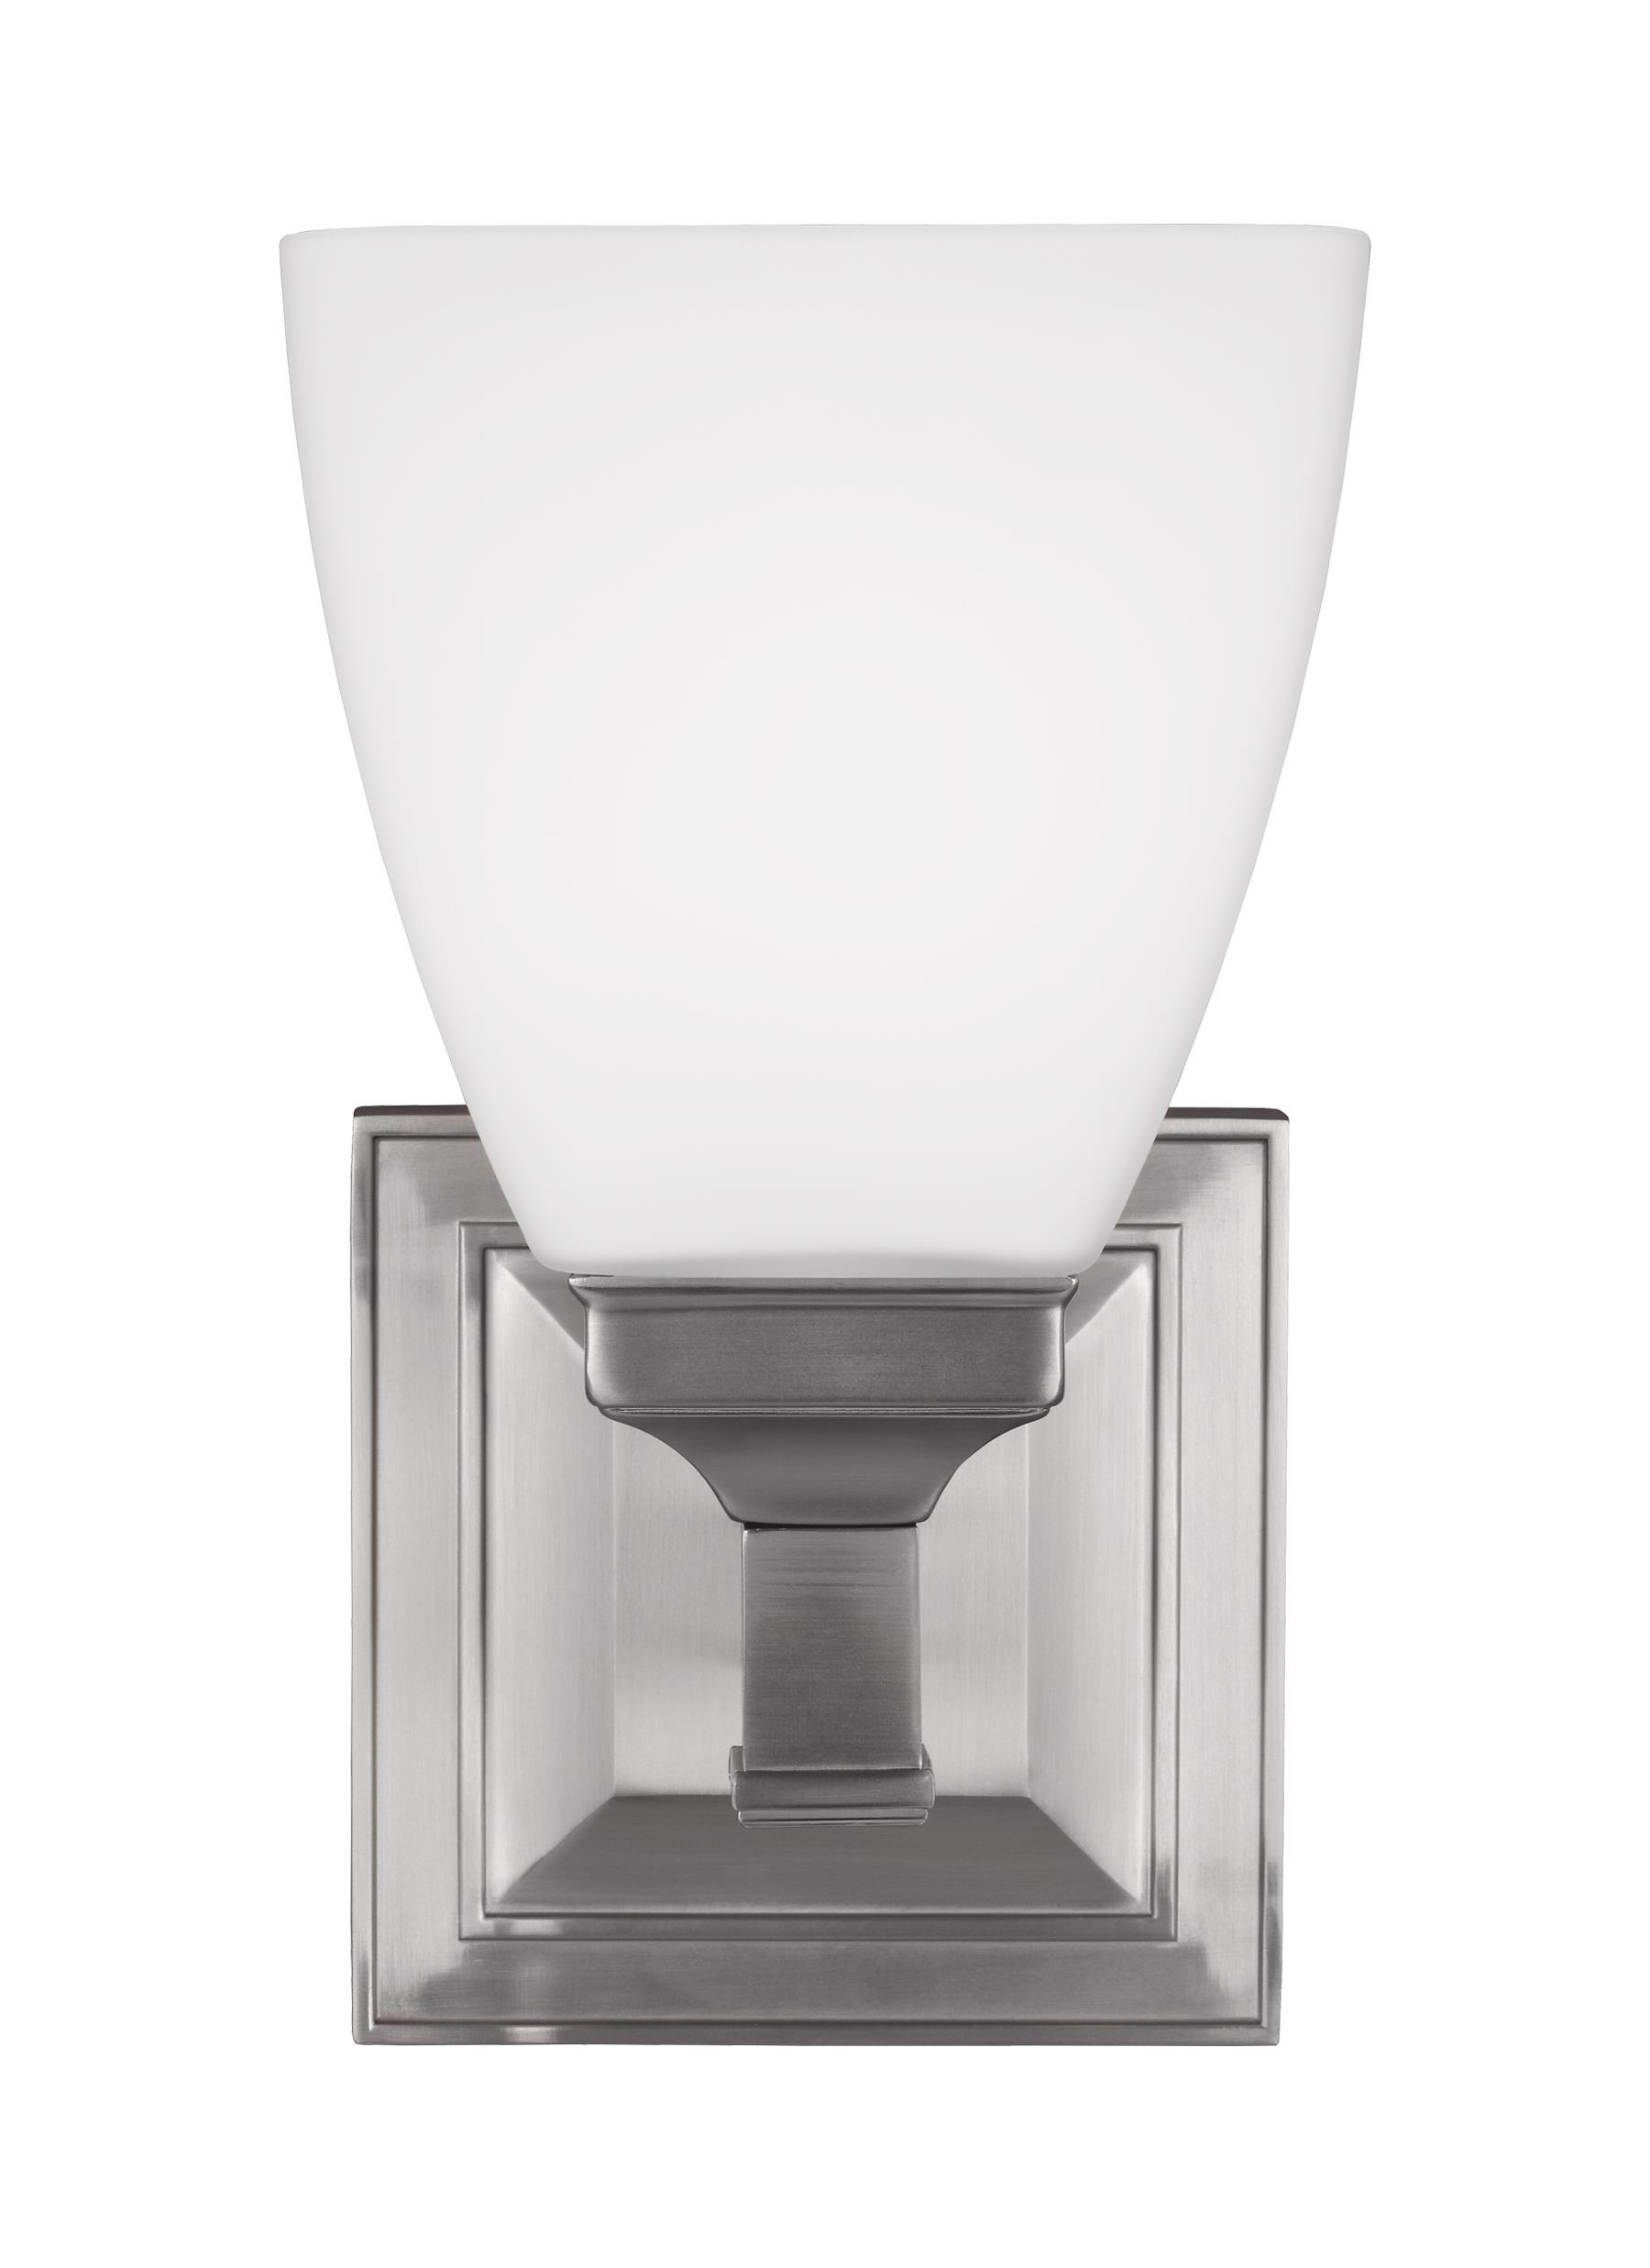 1 Light Wall Sconce Loading Zoom